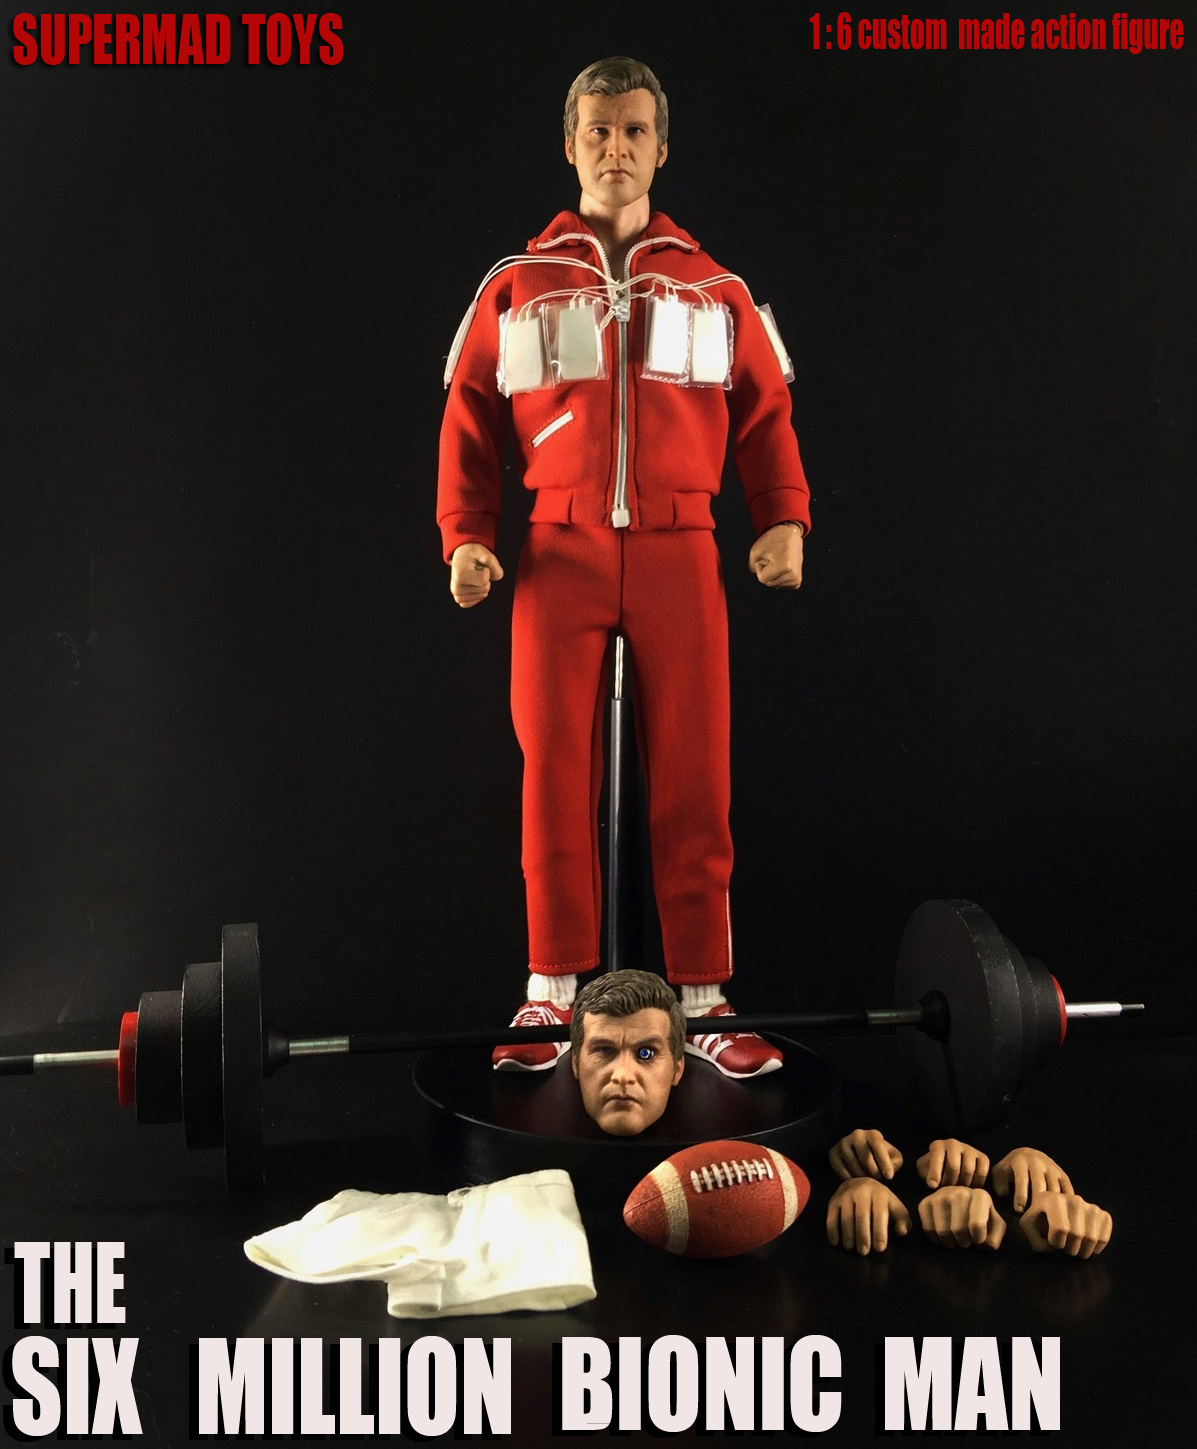 SUPERMAD TOYS SMT004 1/6 The Six Million Bionic Man